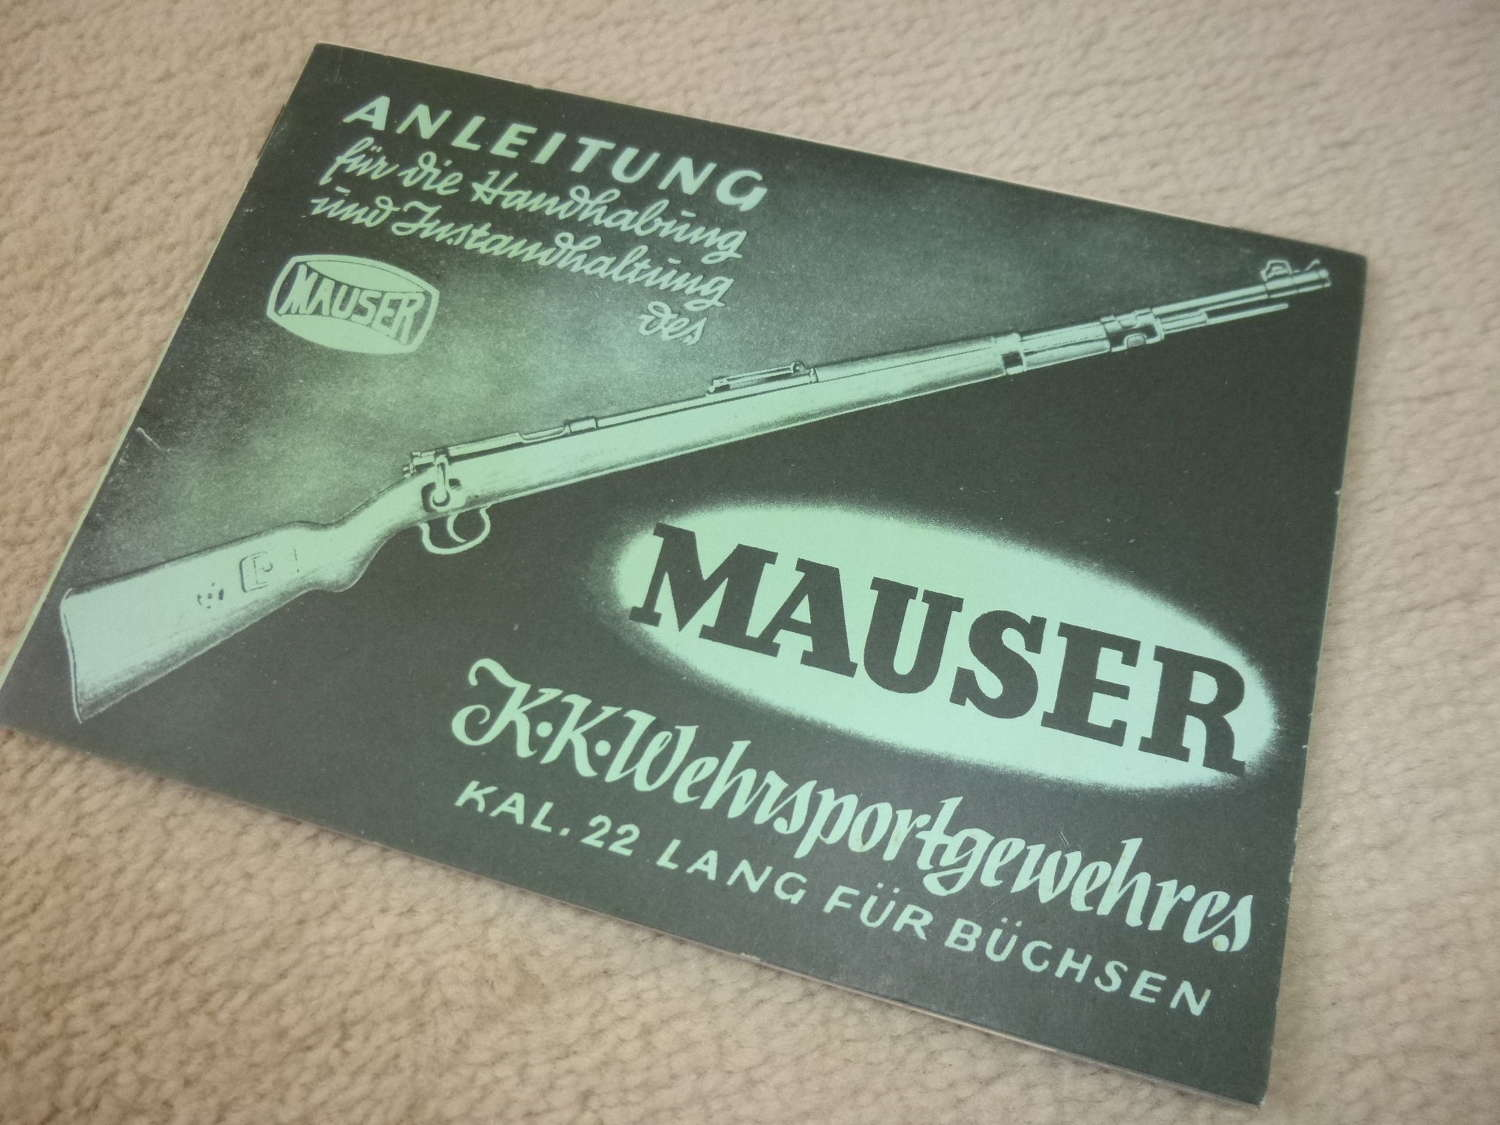 Mauser rifle manual reprint